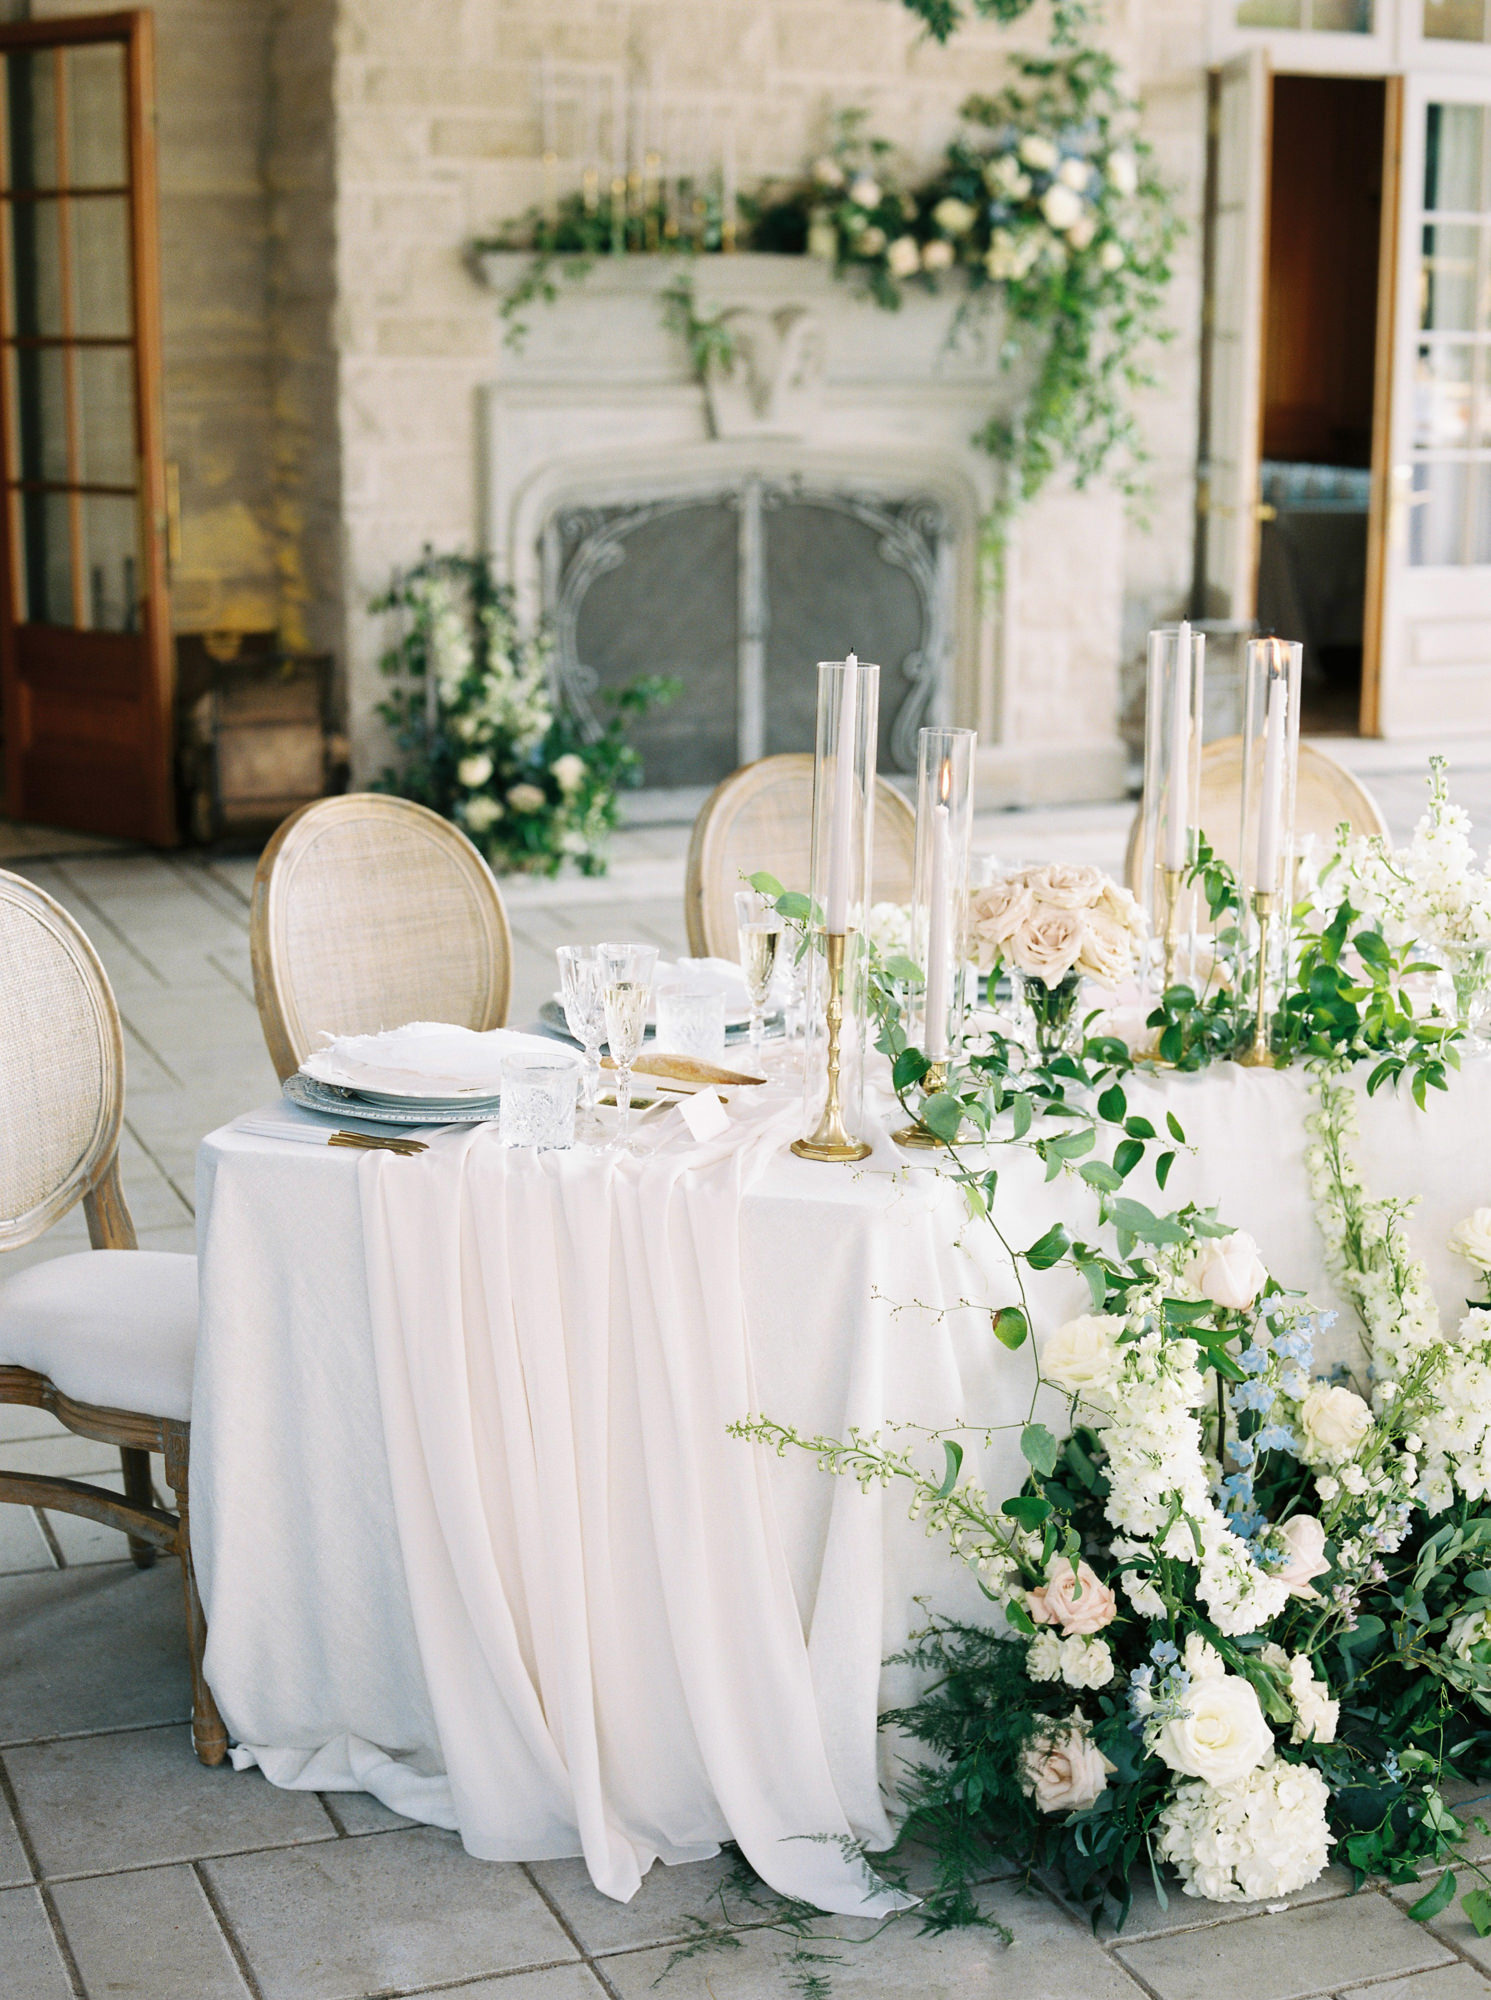 head table decorated with white and green floral arrangements